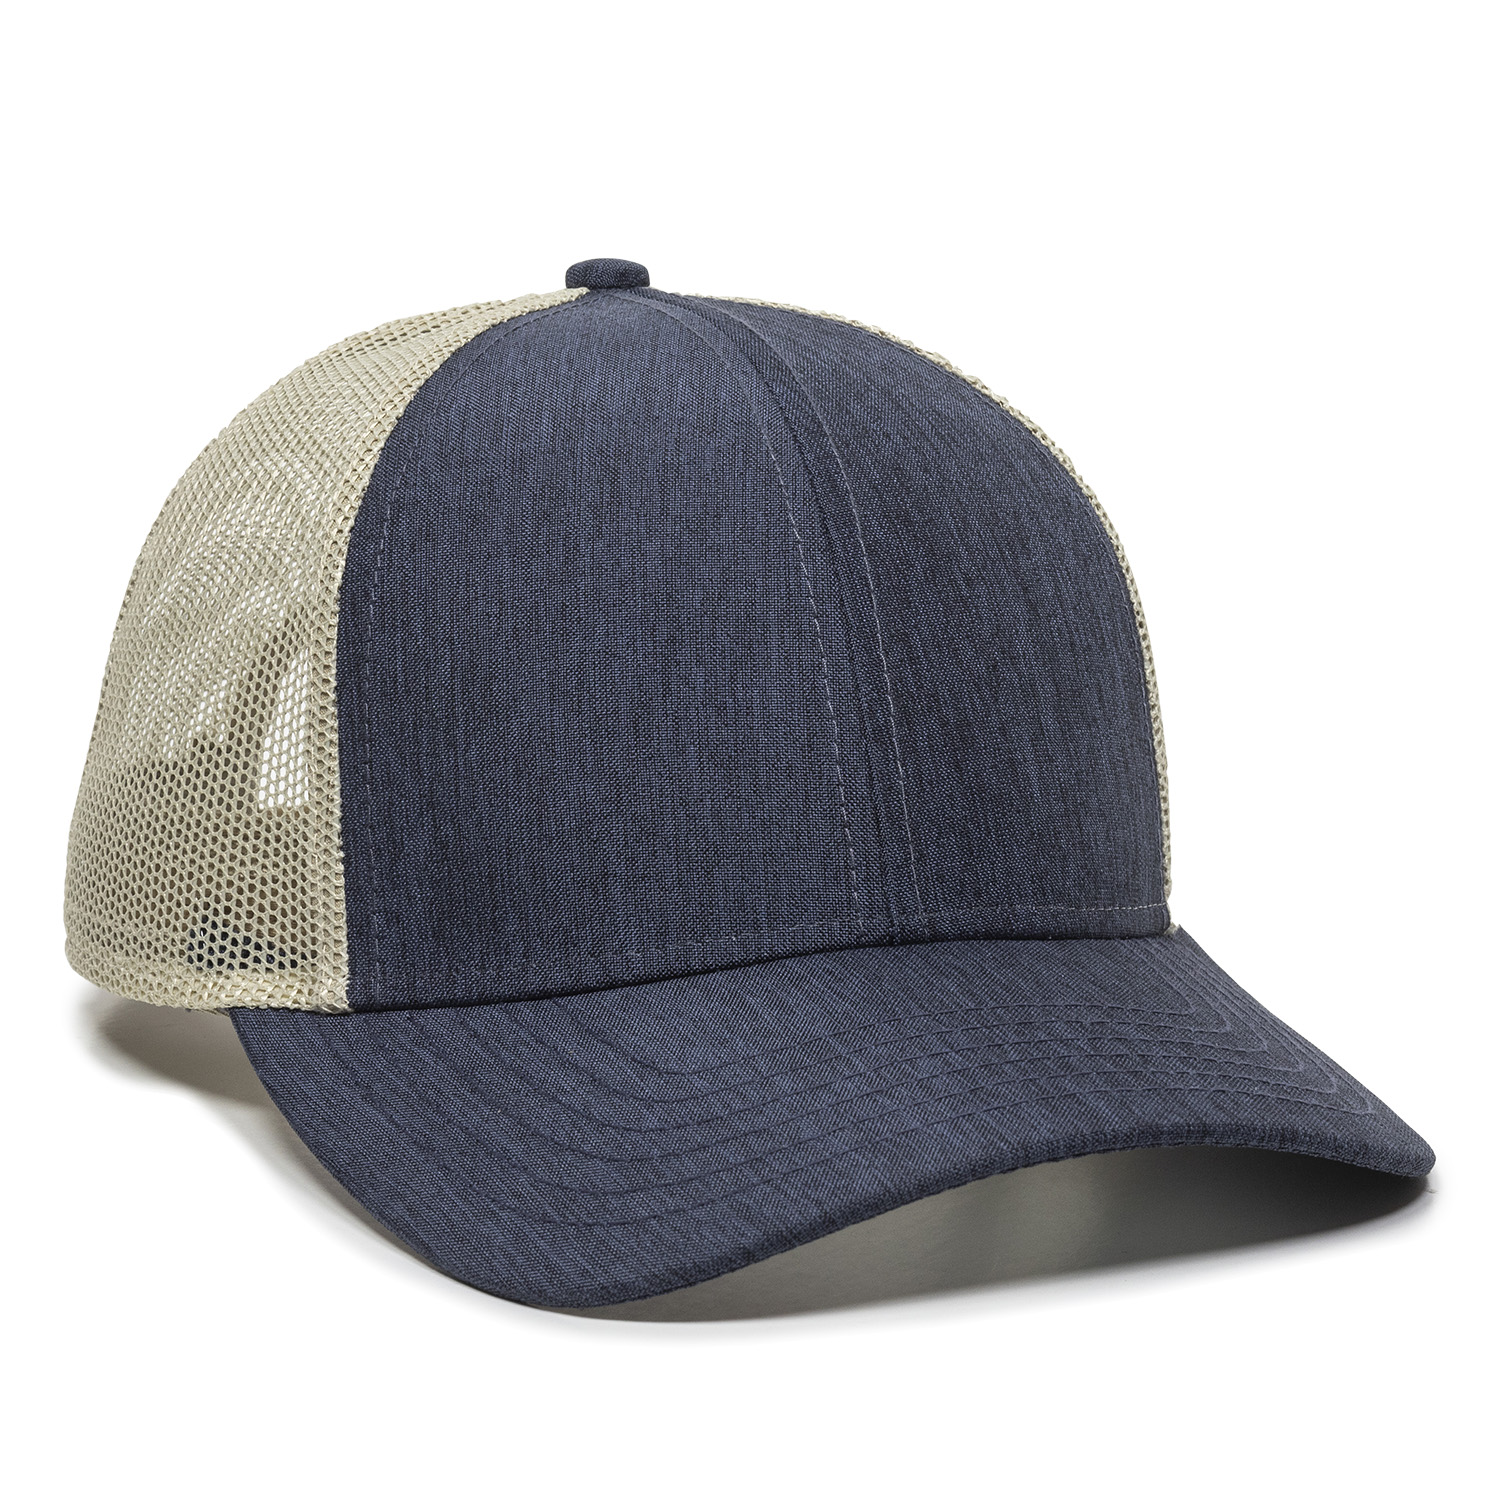 Heathered Navy/Khaki